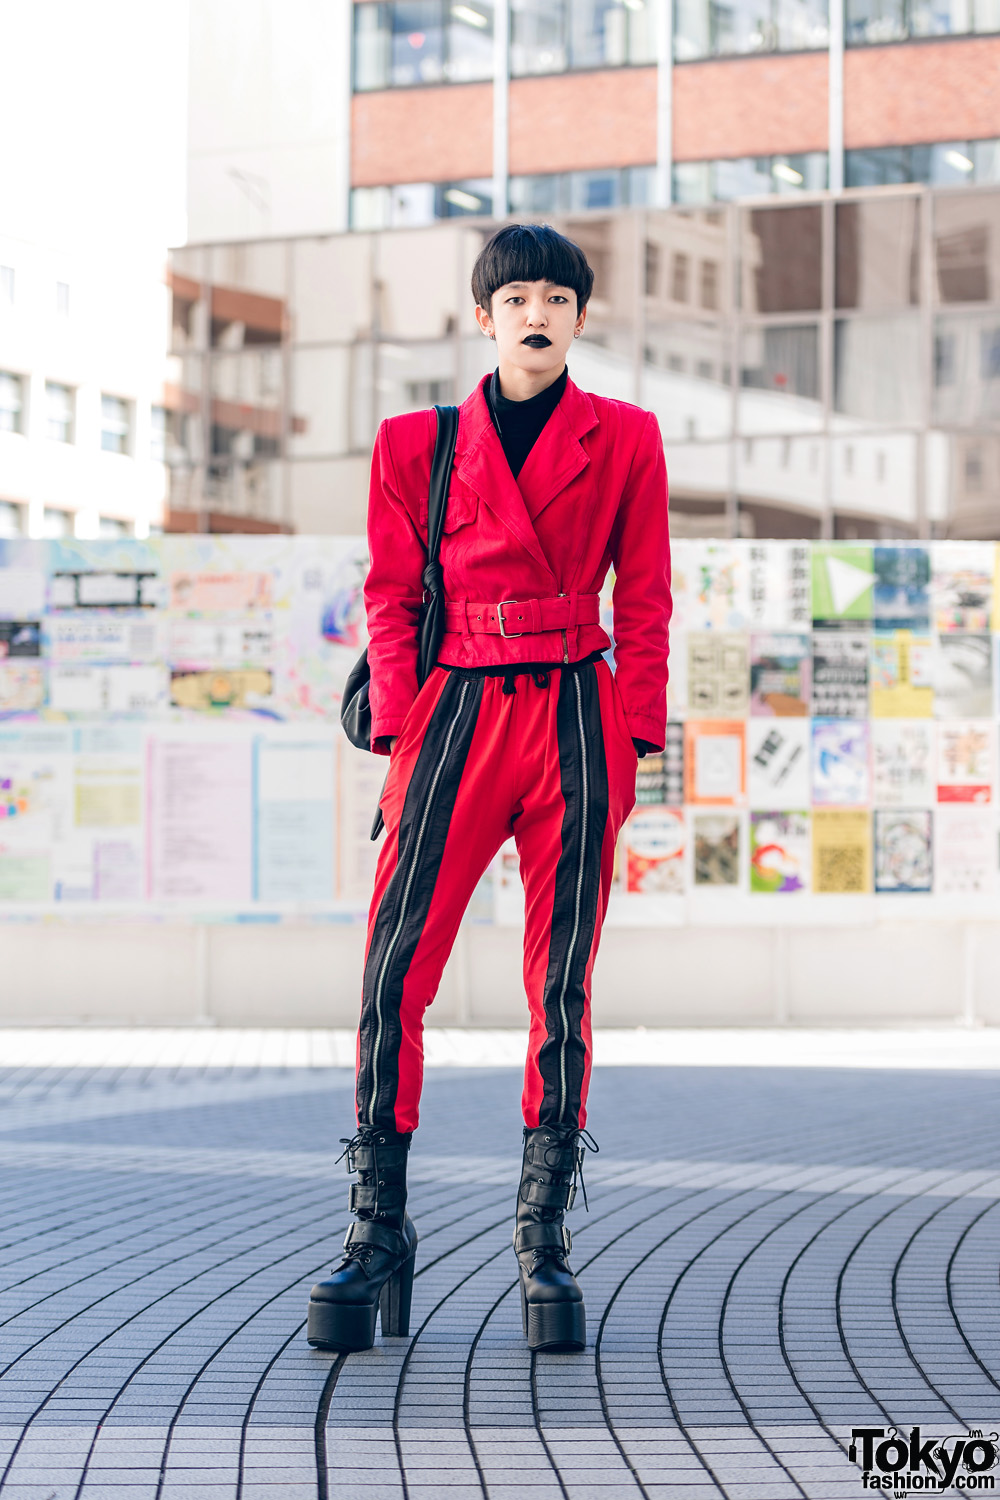 Red & Black Tokyo Street Style w/ Vintage Belted Jacket With Shoulder Pads, Open The Door Bag & Demonia Platforms